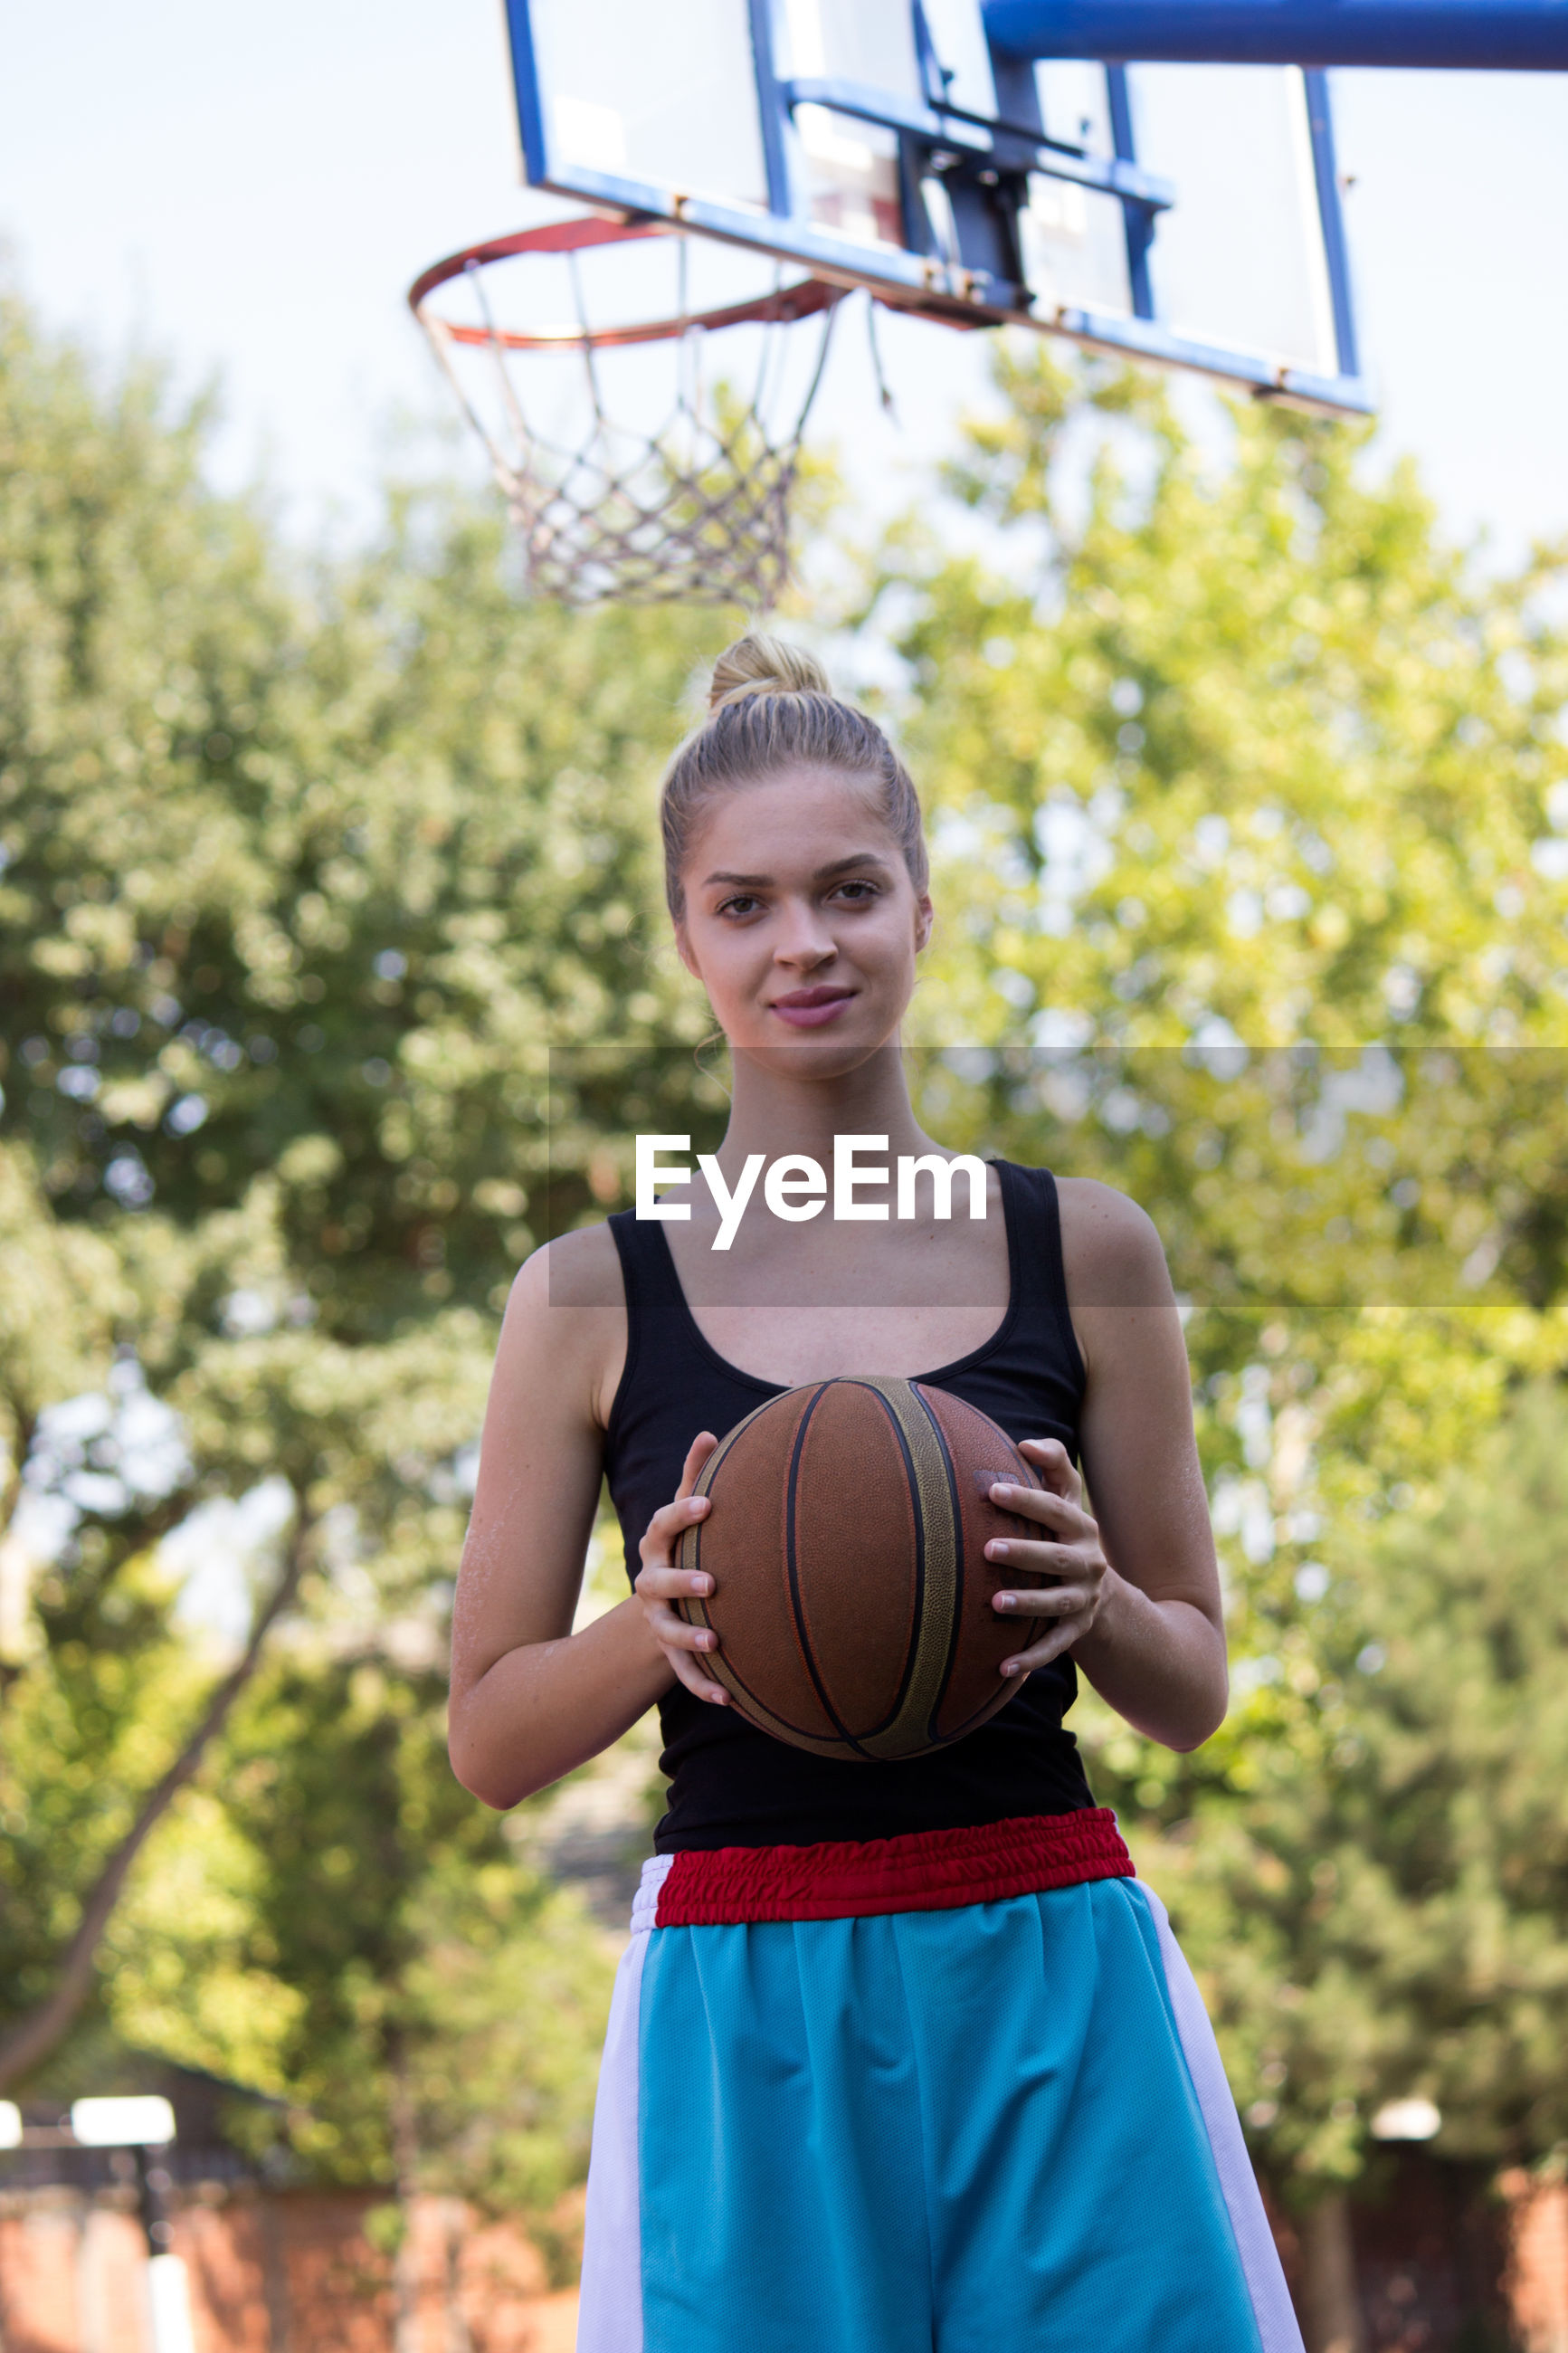 Portrait of young woman holding basketball in court